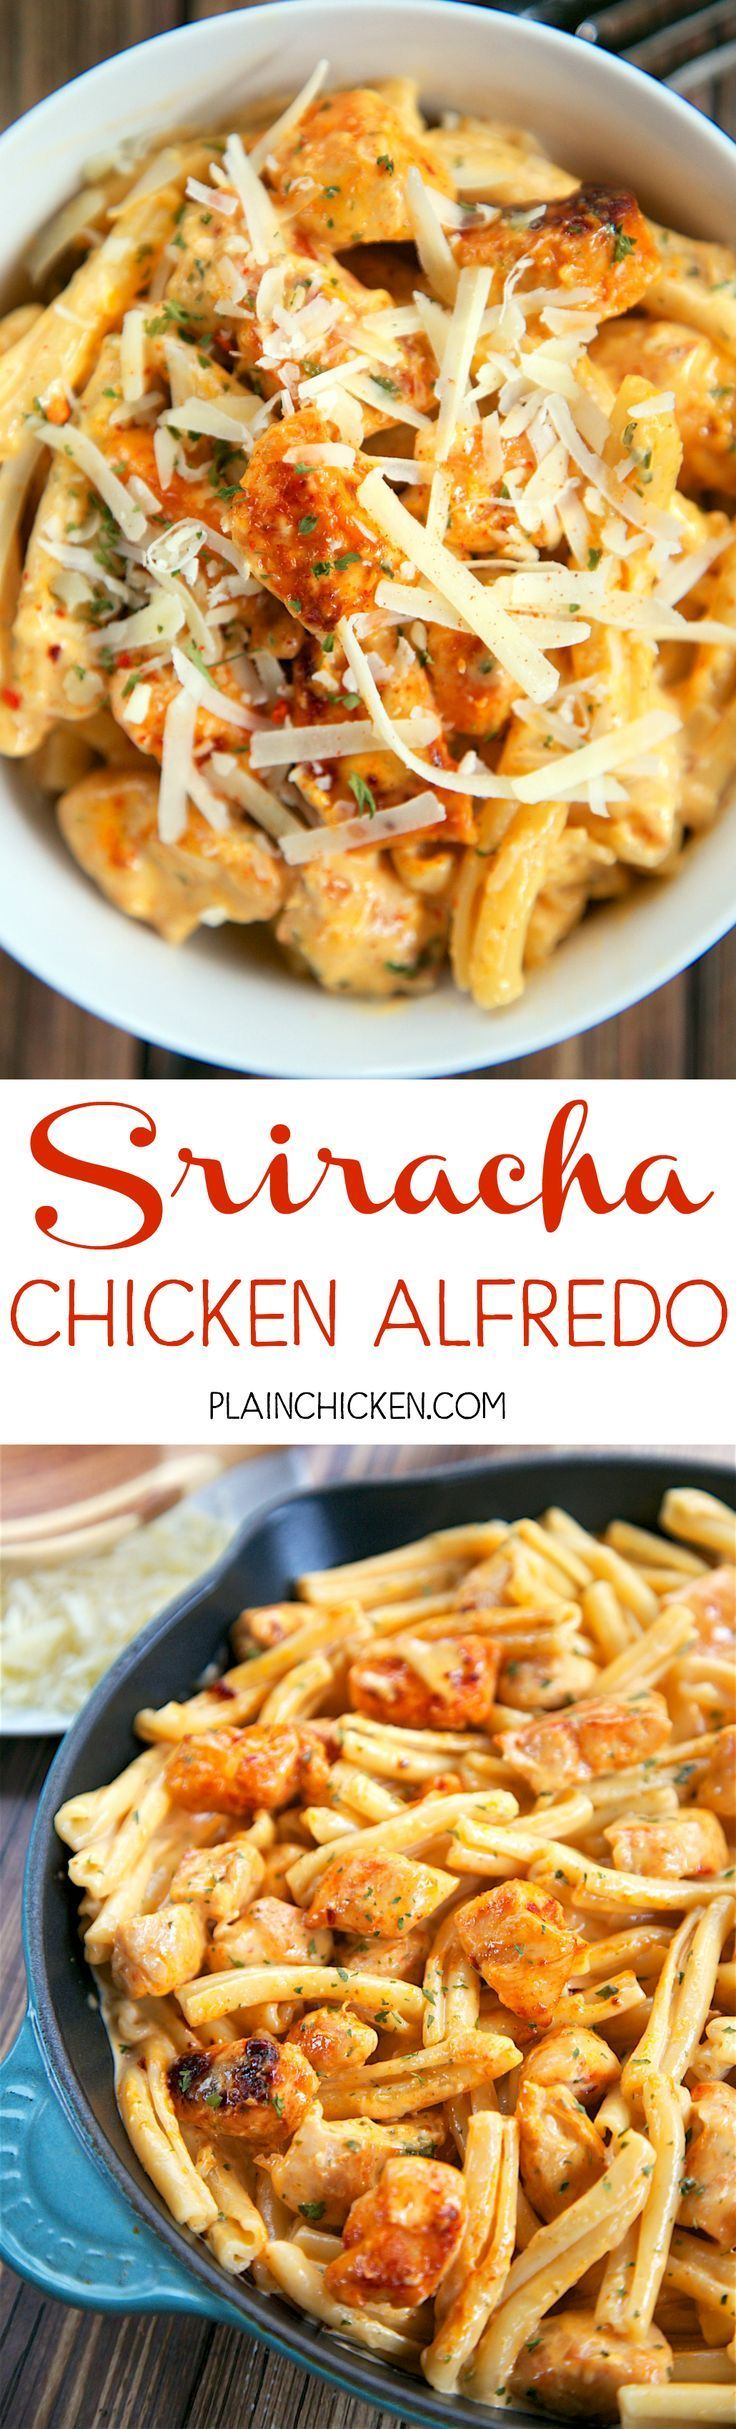 Homemade Sriracha Chicken Alfredo This Super Quick Pasta Dish Is Perfect For Those Busy Week